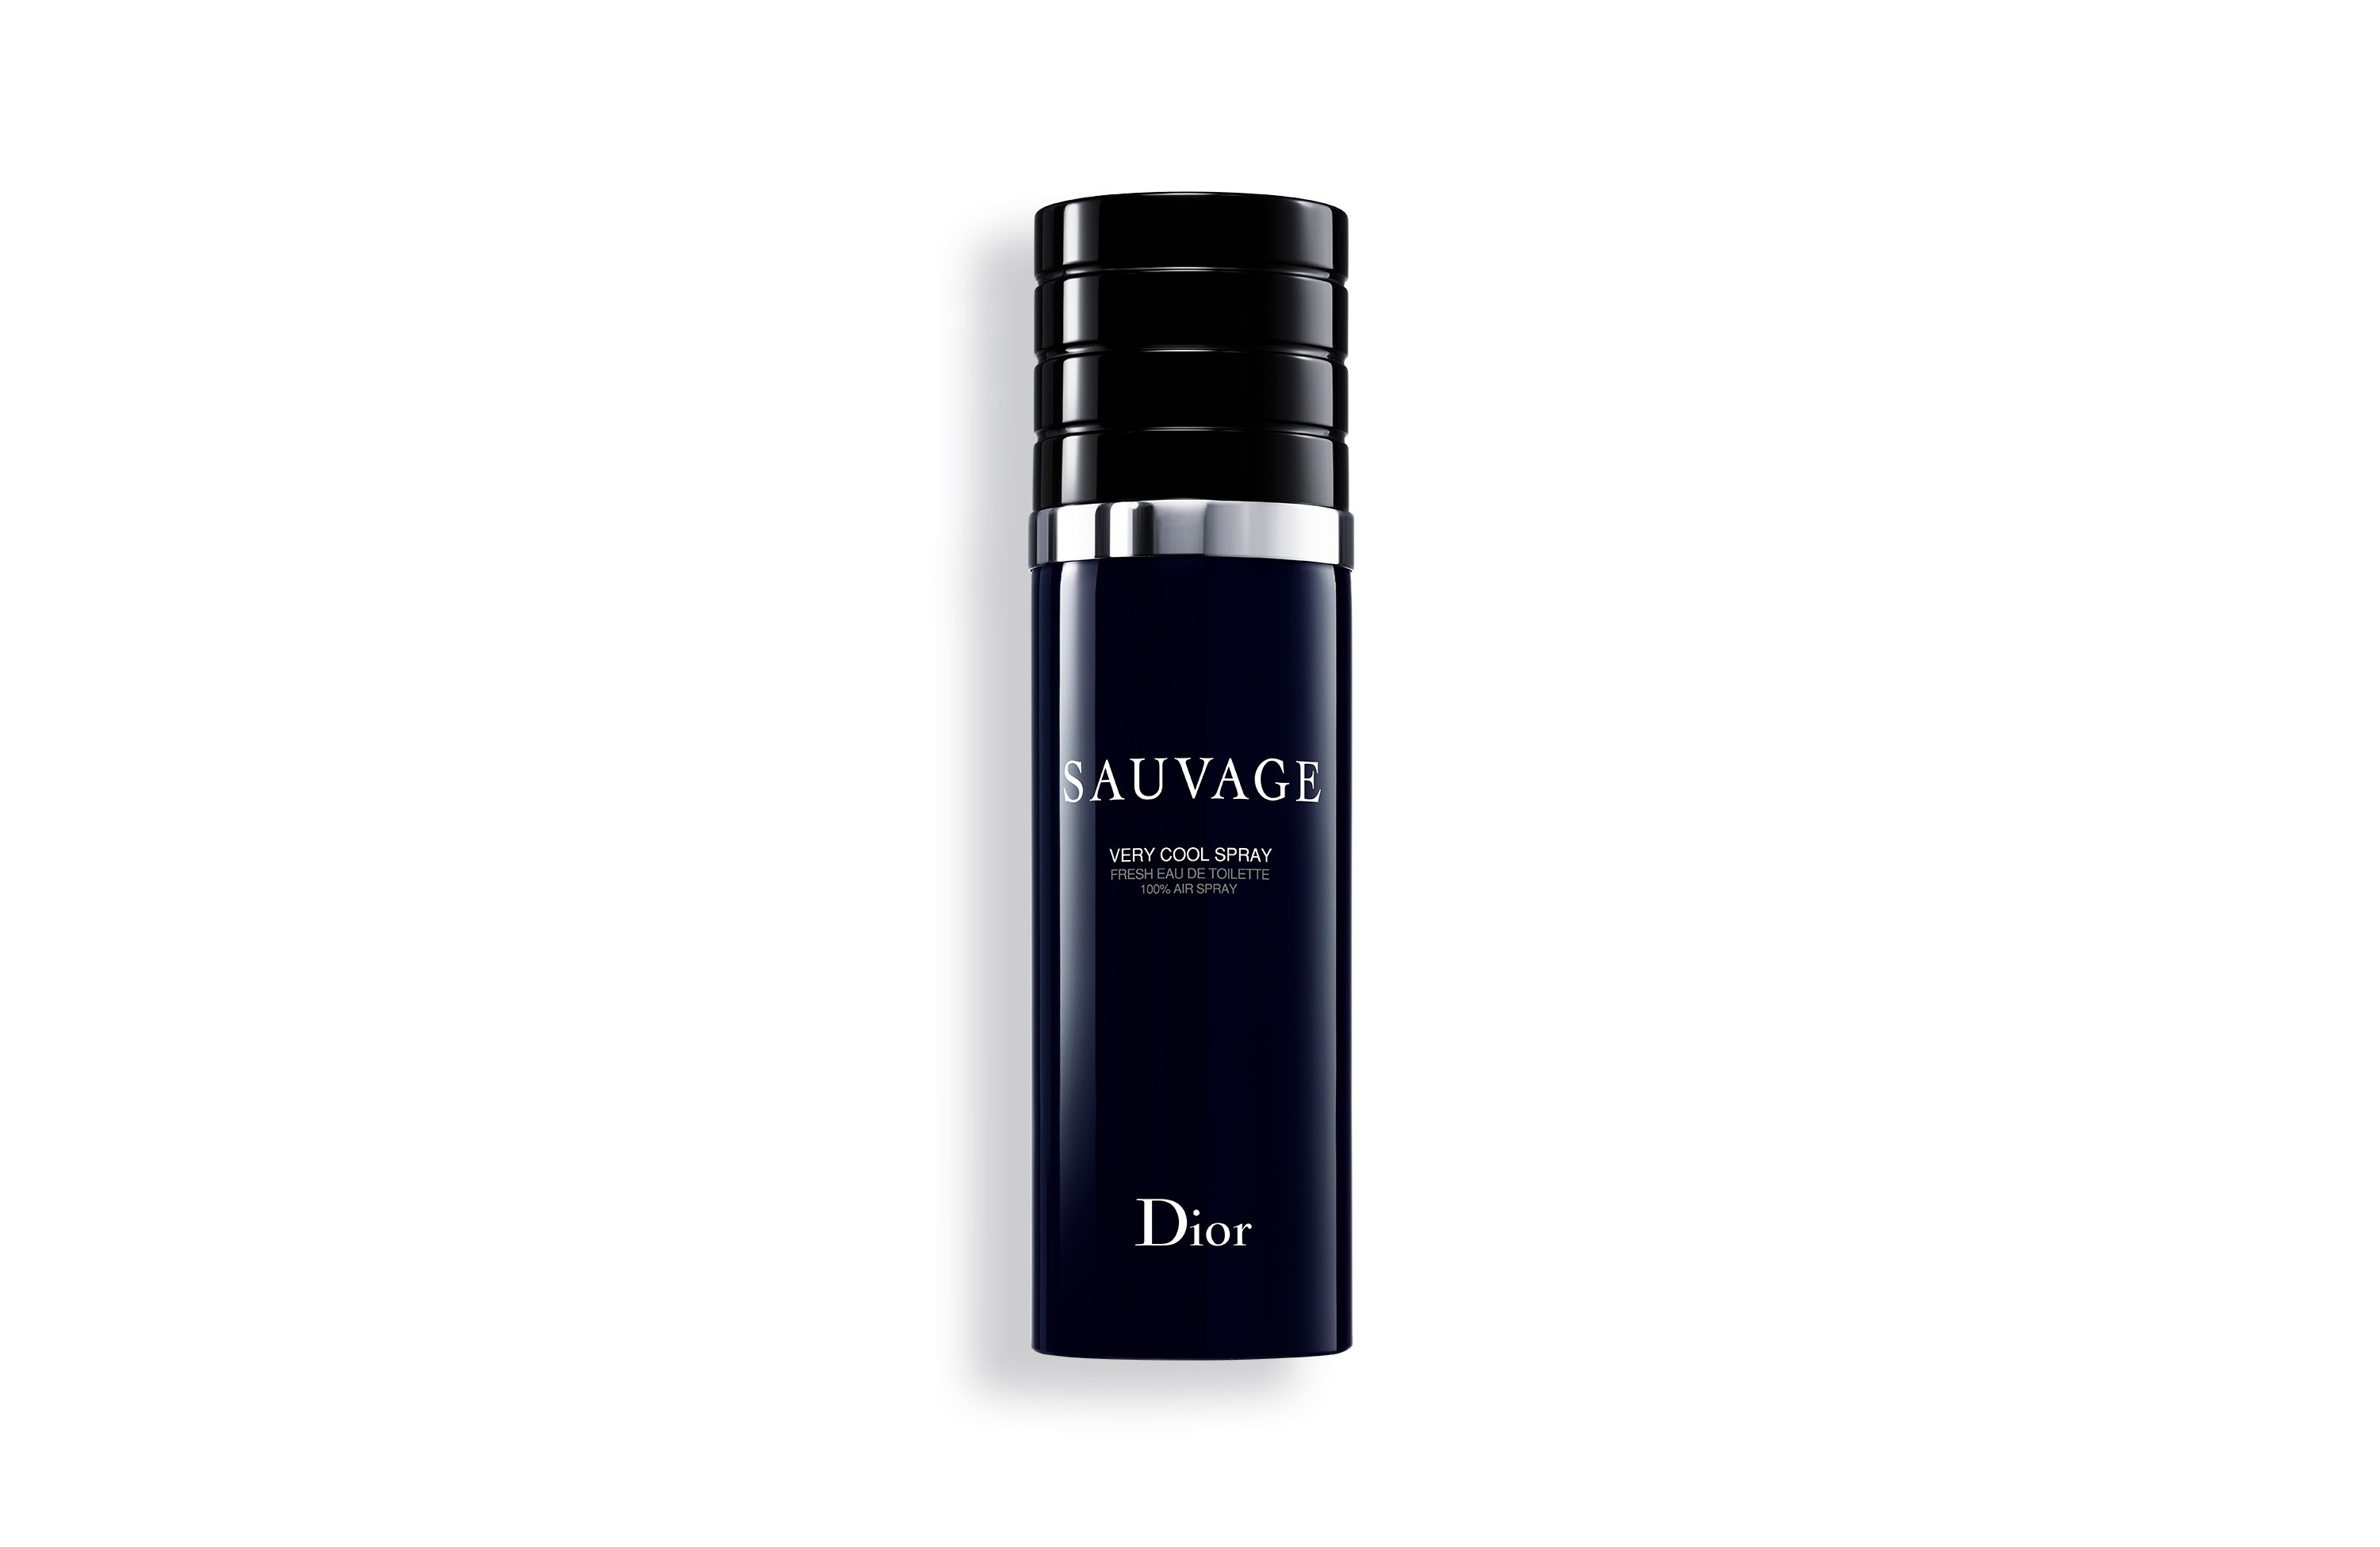 Dior Sauvage Very Cool Spray - Fresh Eau De Toilette - 100% Air Spray